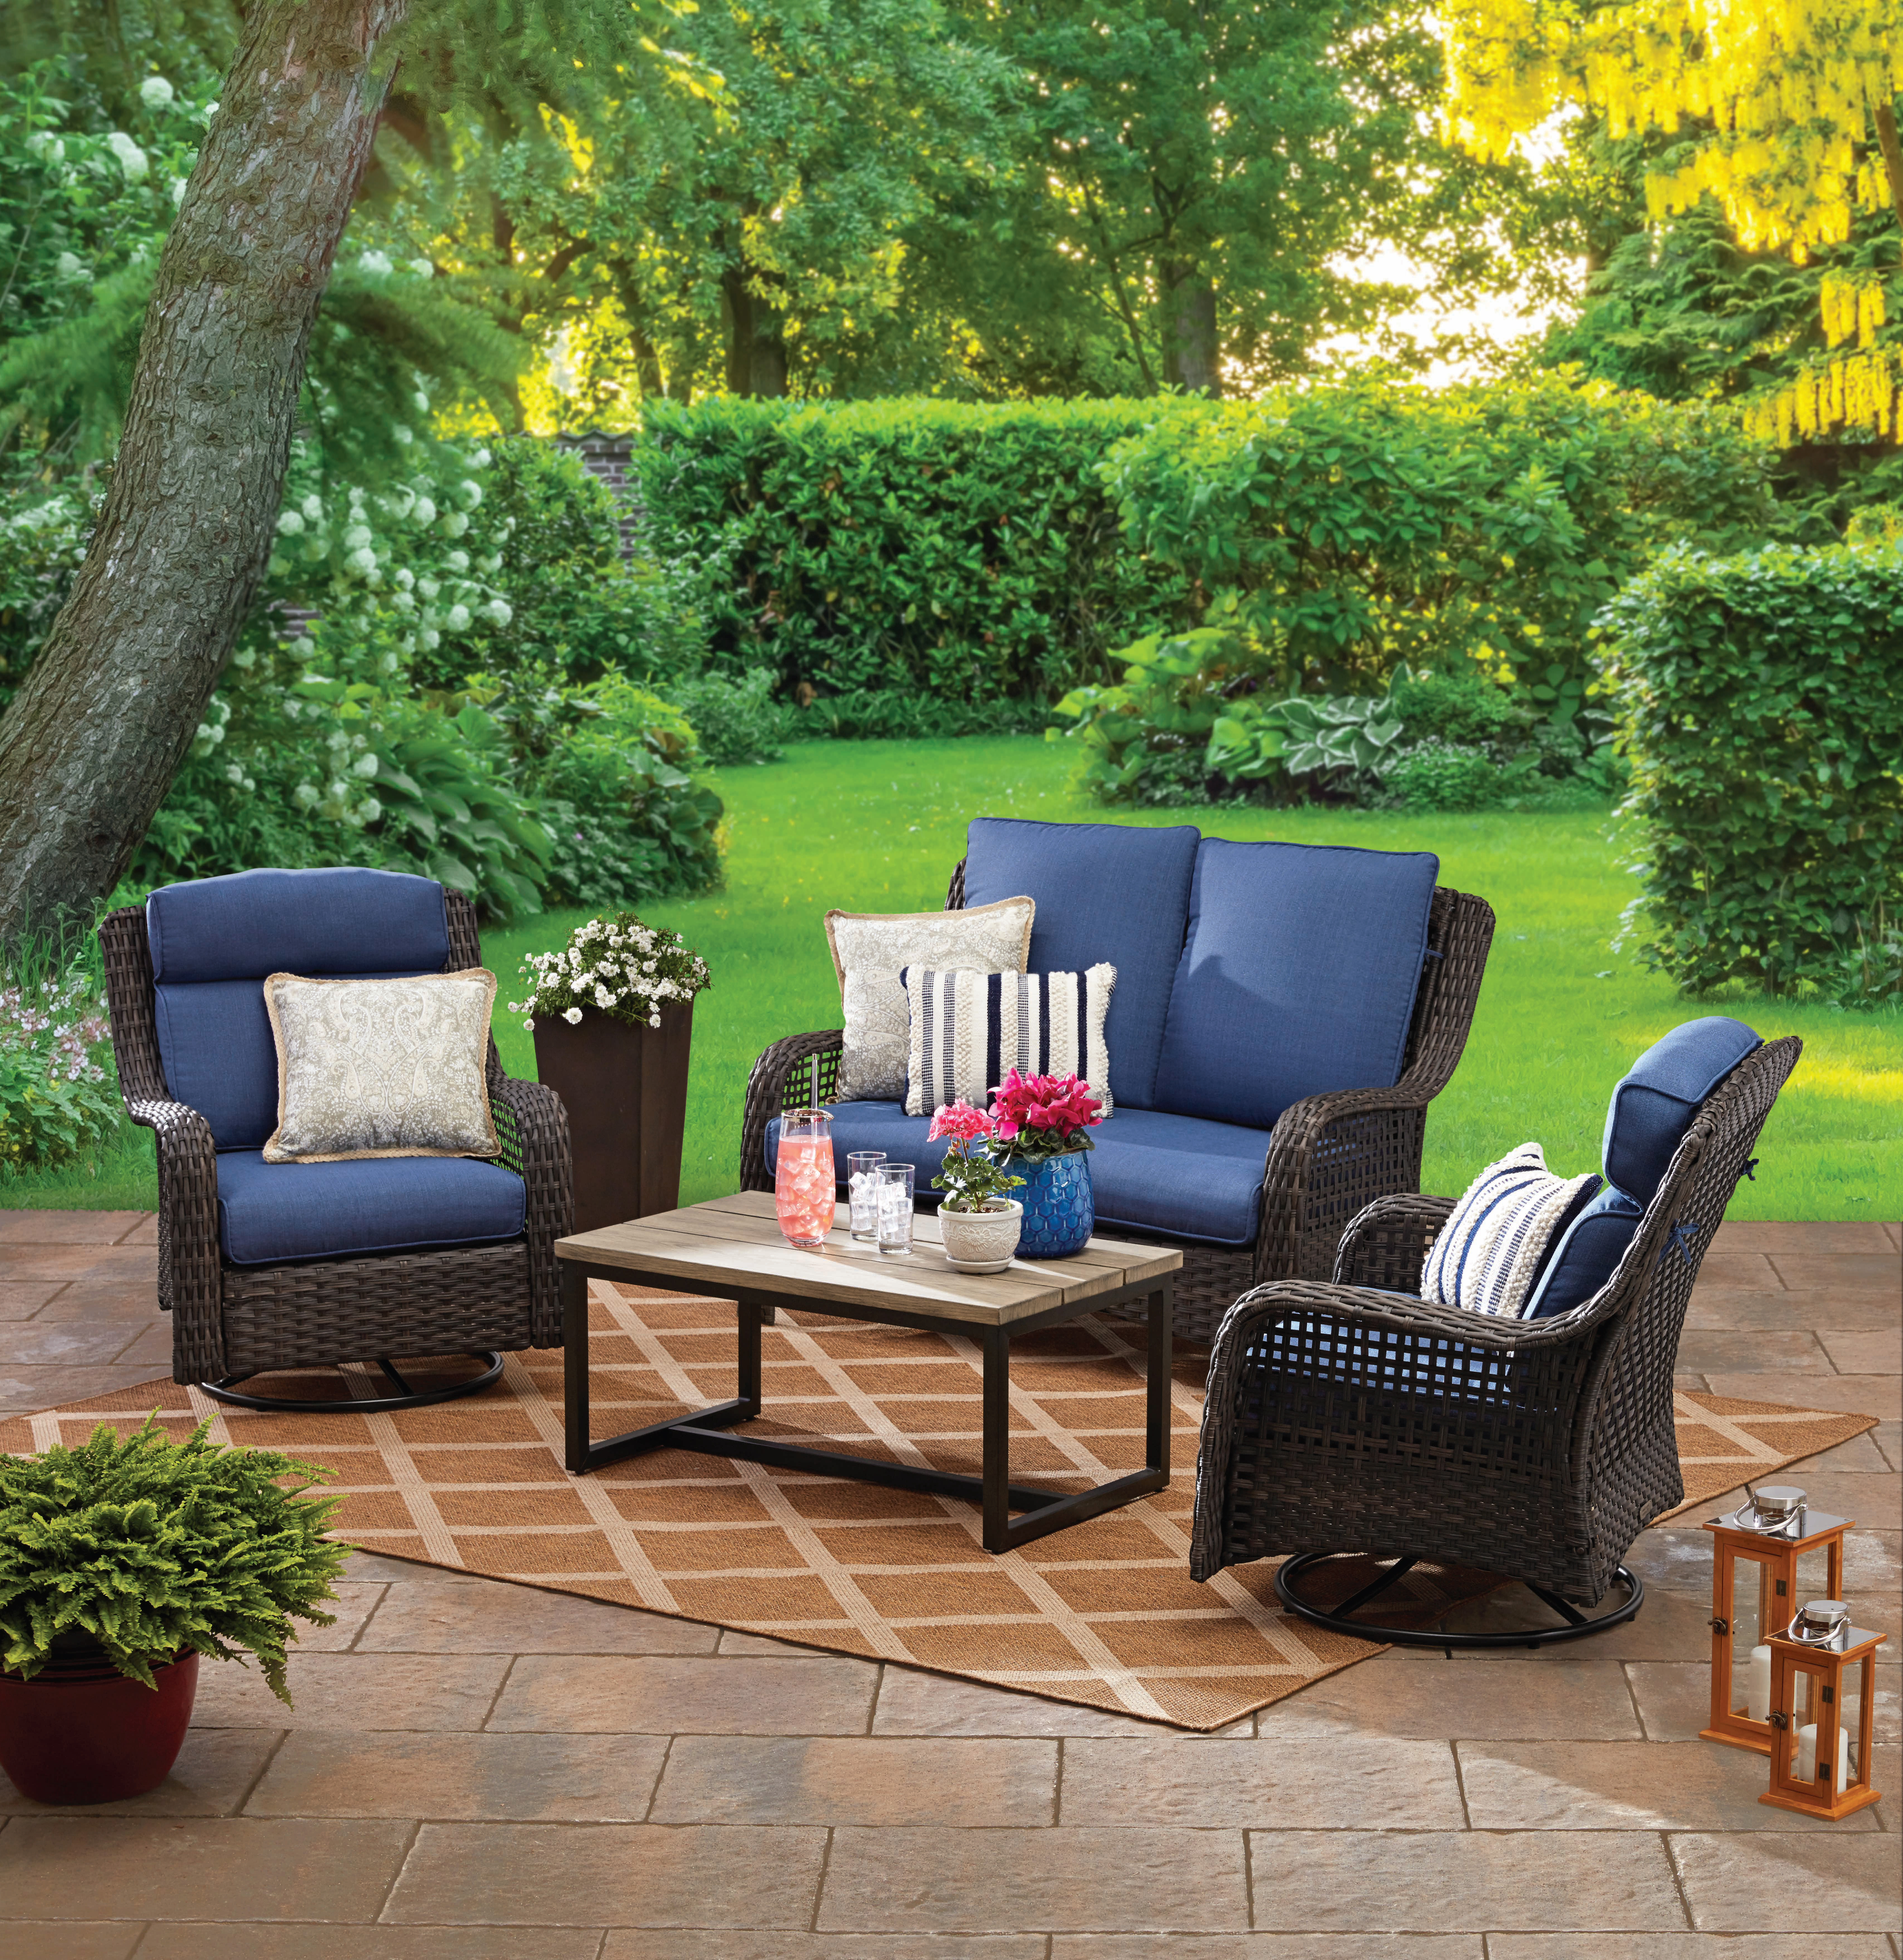 Fashionable Greta Living Patio Sectionals With Cushions Throughout Better Homes & Gardens Ravenbrooke 4 Piece Patio (View 3 of 20)